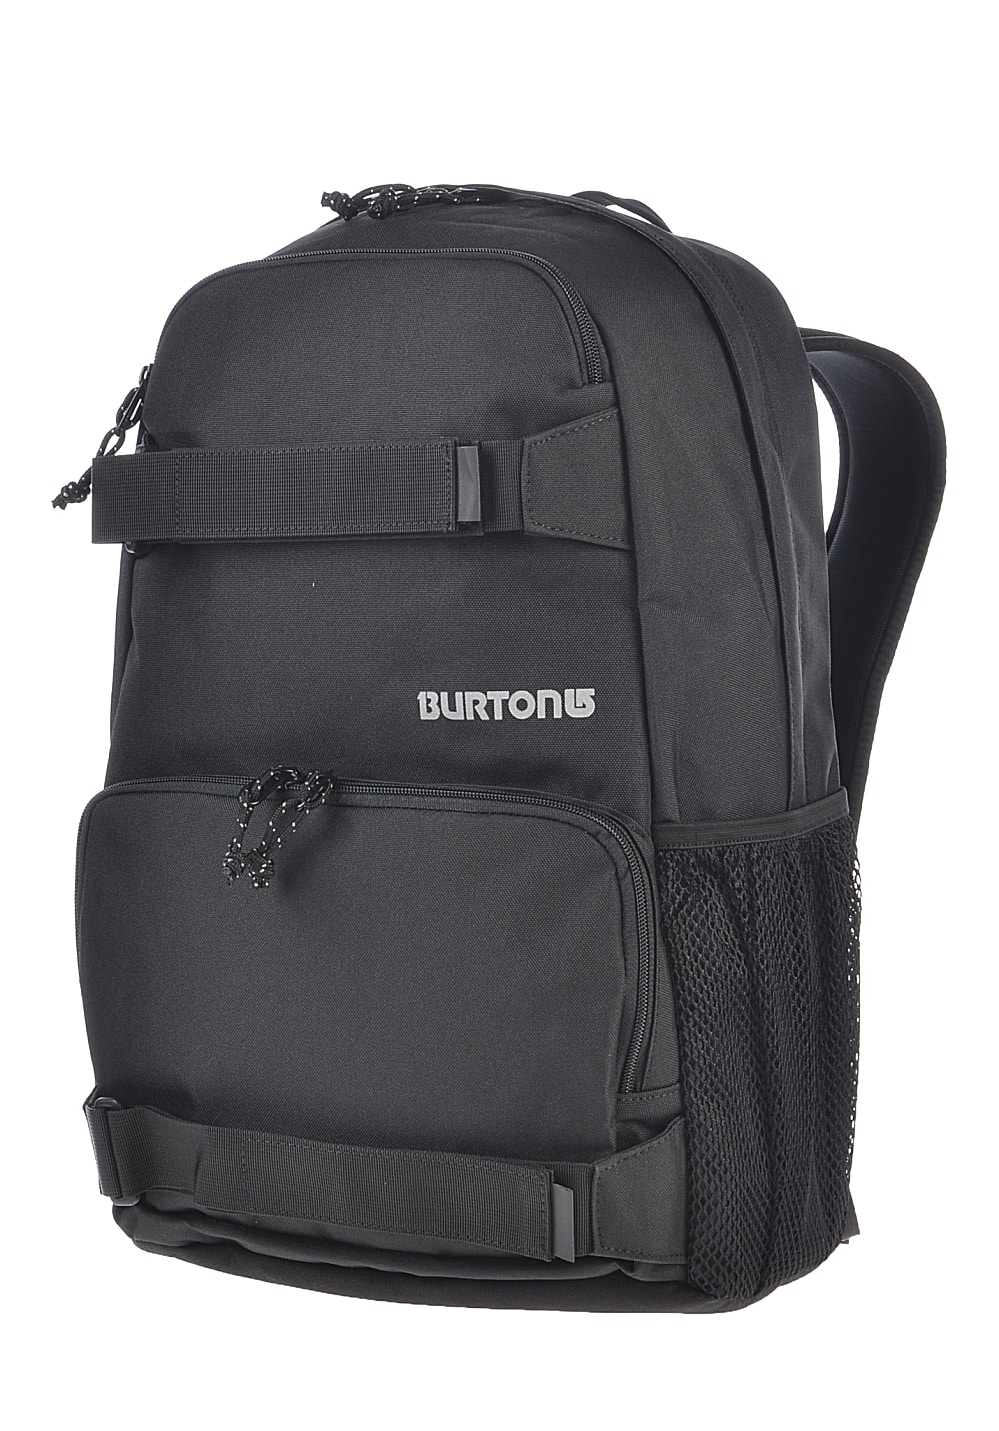 burton treble yell rucksack schwarz planet sports. Black Bedroom Furniture Sets. Home Design Ideas